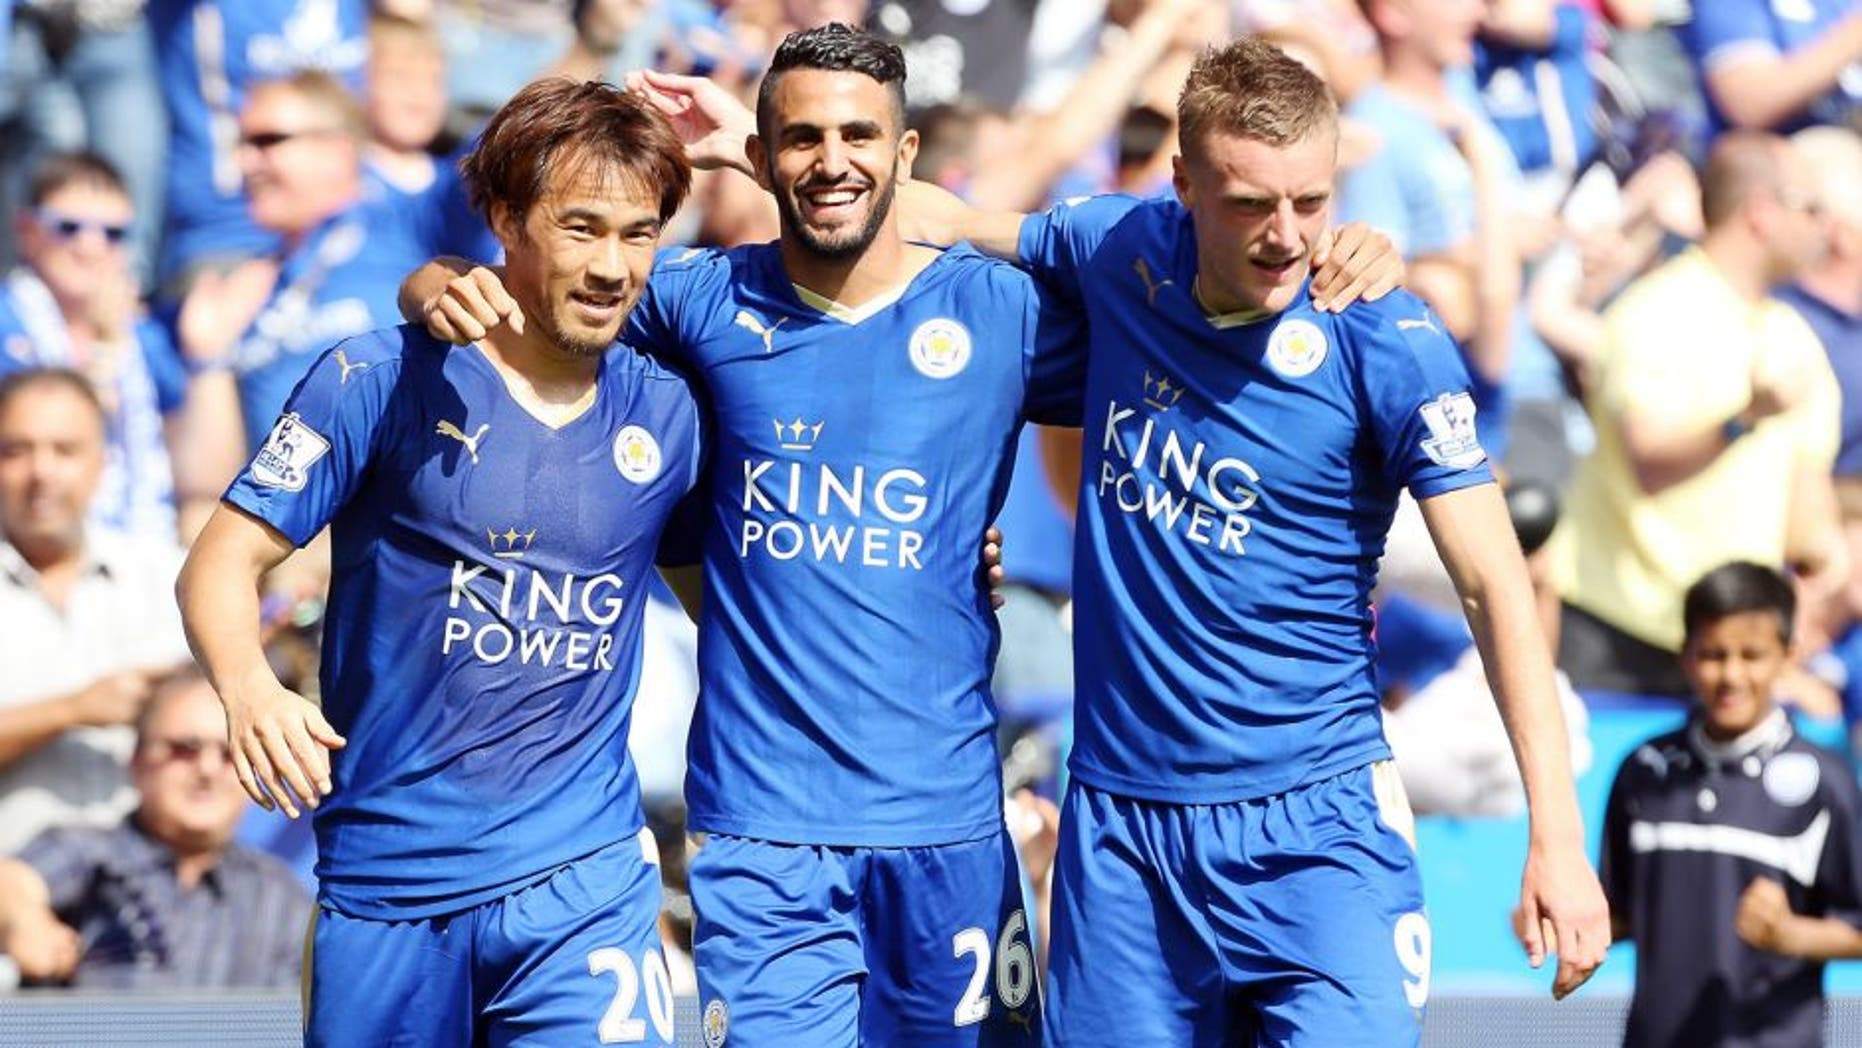 LEICESTER, ENGLAND - AUGUST 08: GOAL Riyad Mahrez of Leicester City celebrates with Jamie Vardy and Shinji Okazaki of Leicester City after scoring to make it 2-0 during the Barclays Premier League match between Leicester City and Sunderland at the King Power Stadium on August 08, 2015 in Leicester, England. (Photo by Plumb Images/Leicester City FC via Getty Images)